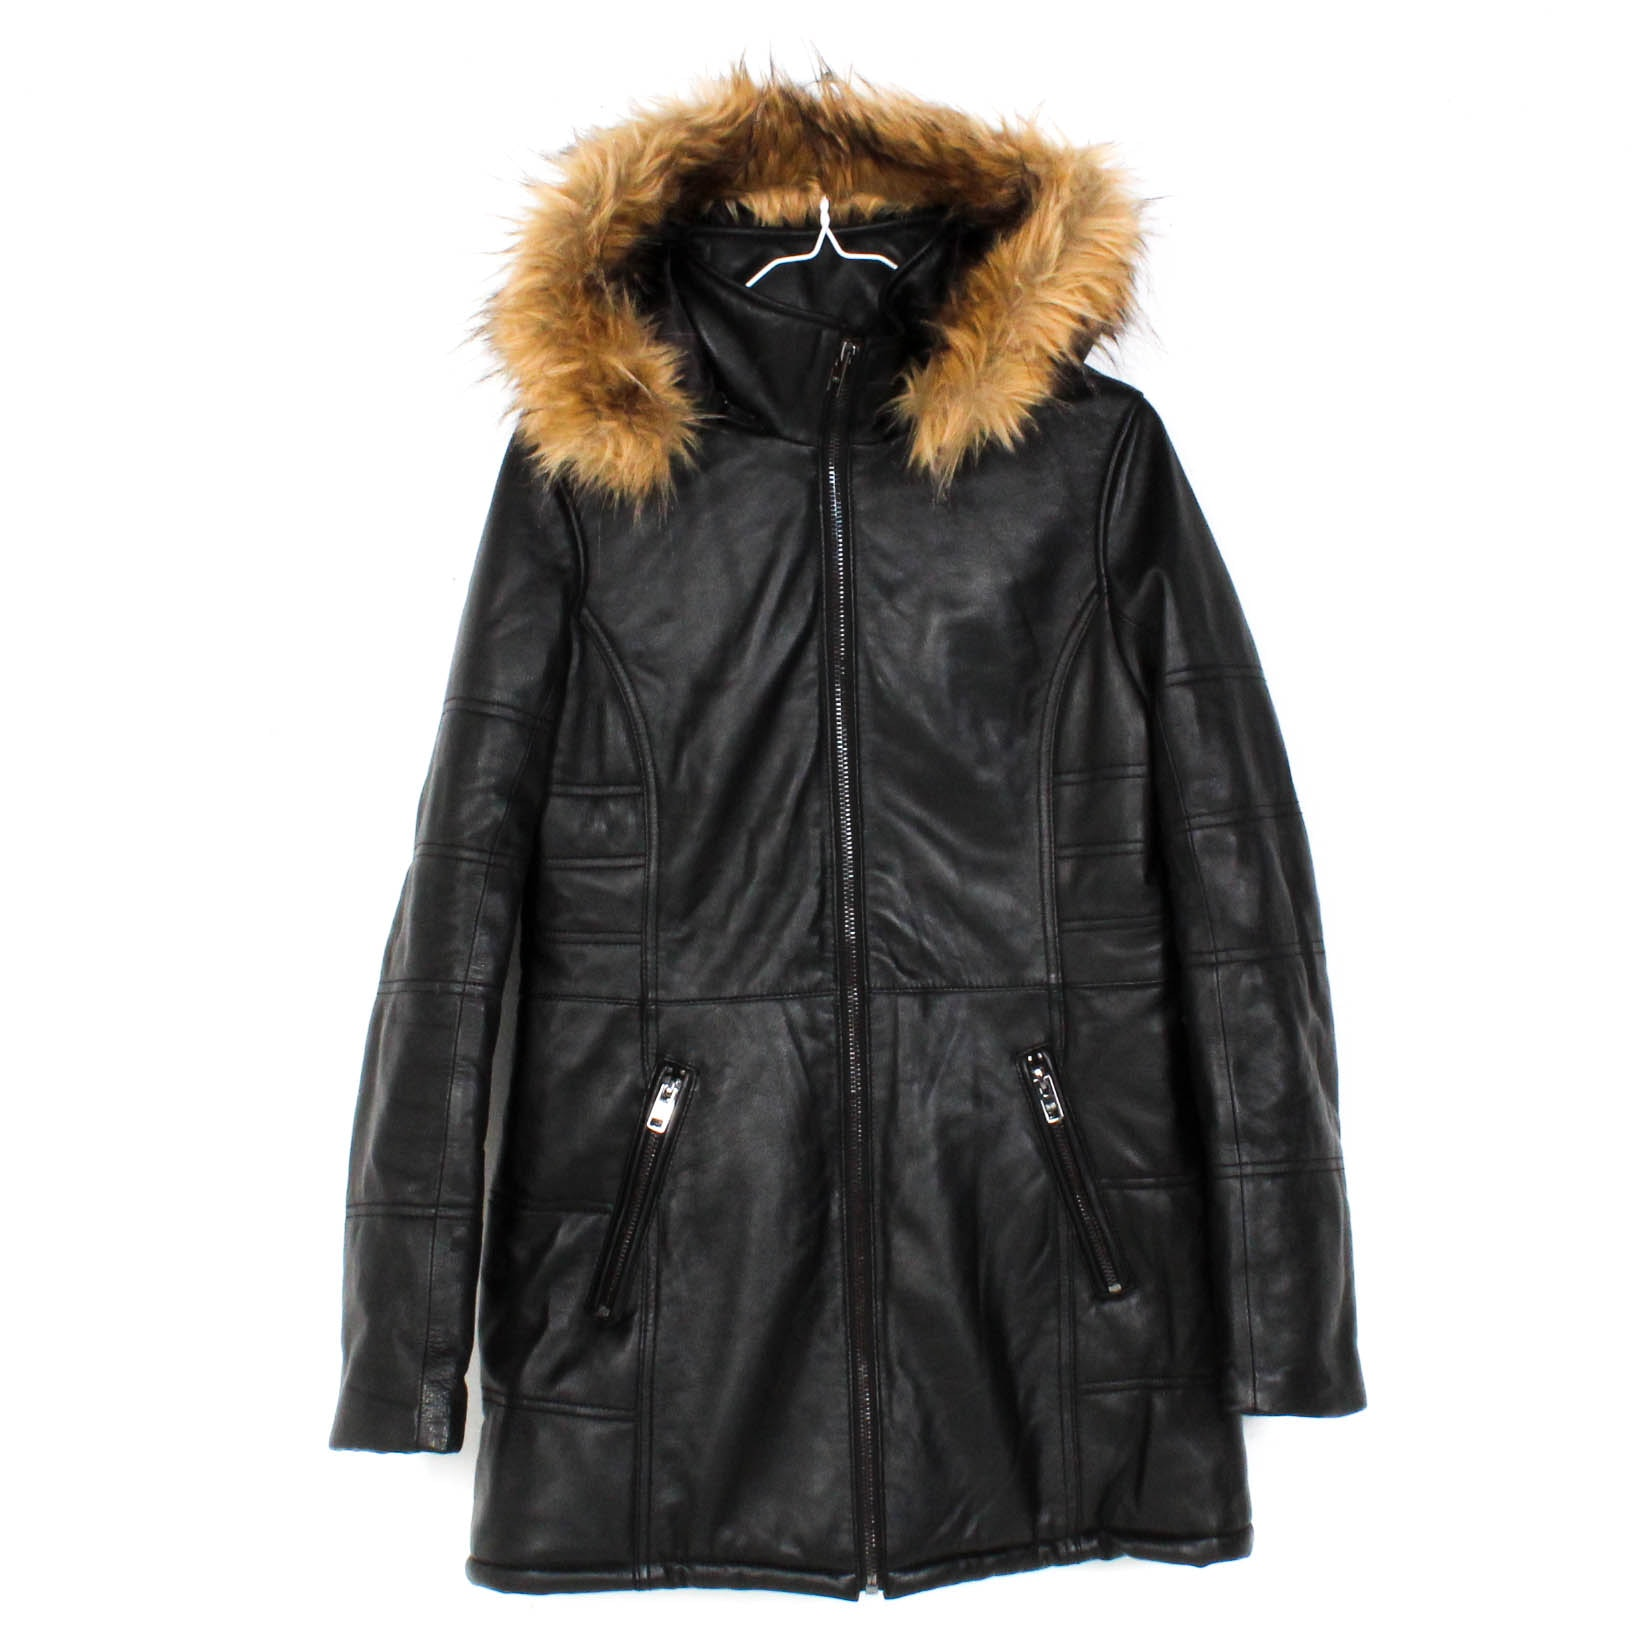 Black Rivet Black Leather Hooded Coat with Faux Fur Trim